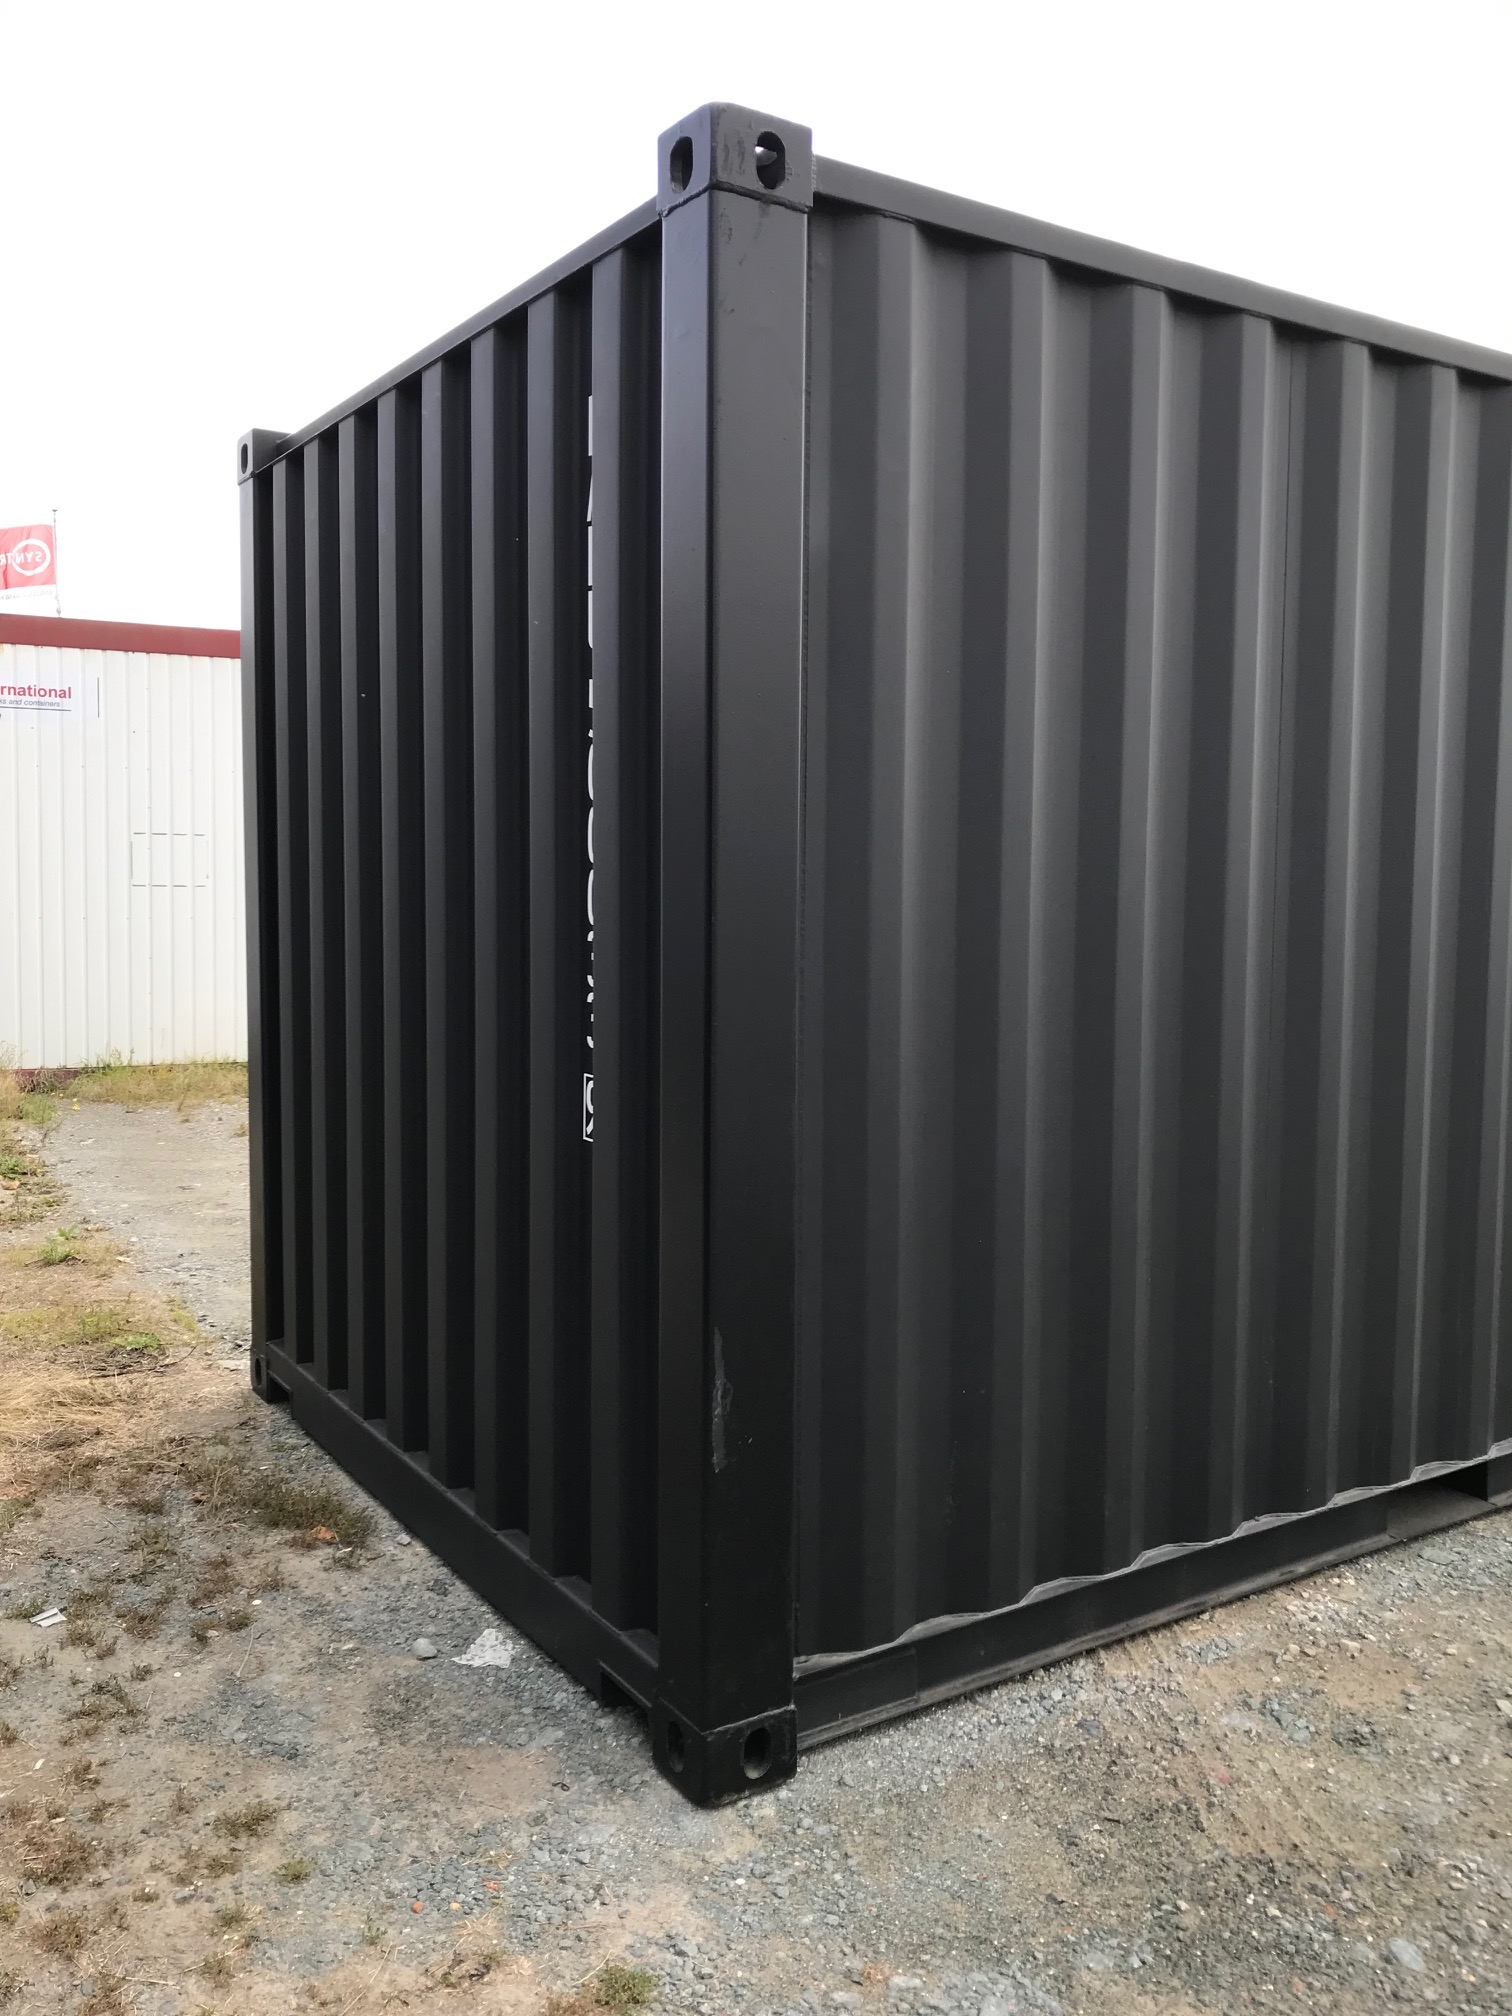 Seecontainer 20ft Schwarze Seecontainer (erste Reise) | Promotions | Mechanic International